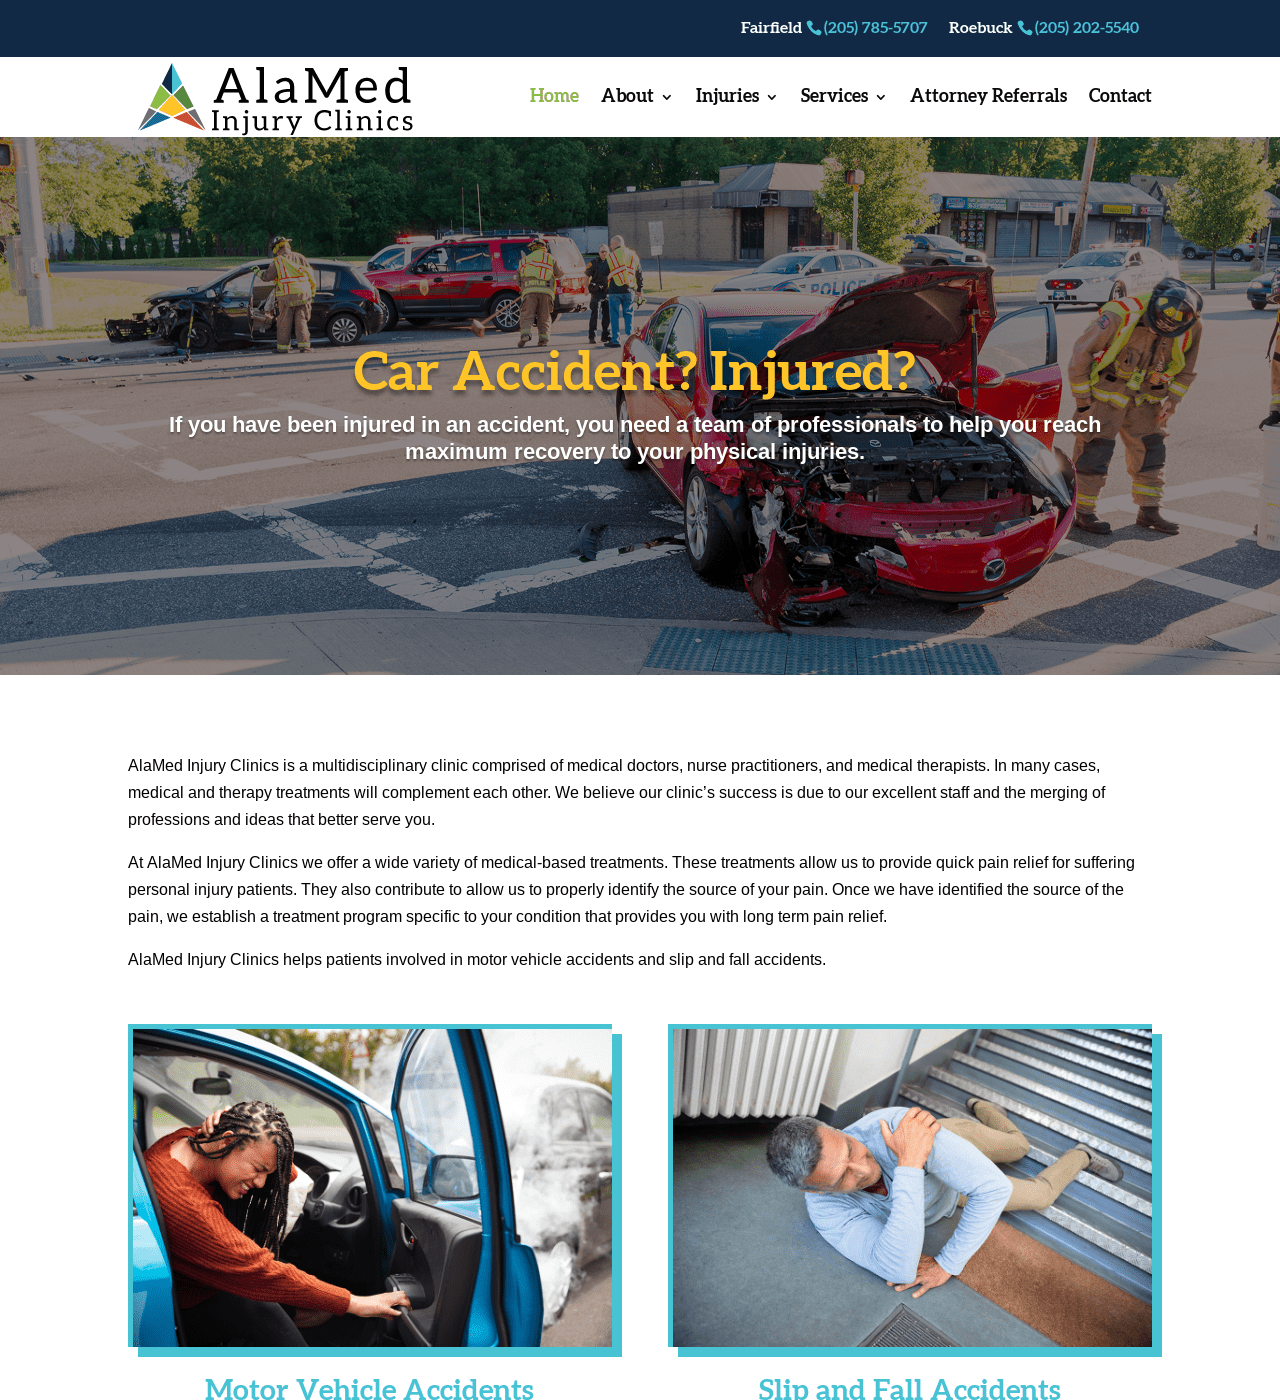 Birmingham-Web-Design-Agency-C-Kinion-Design- AlaMed Injury Clinics